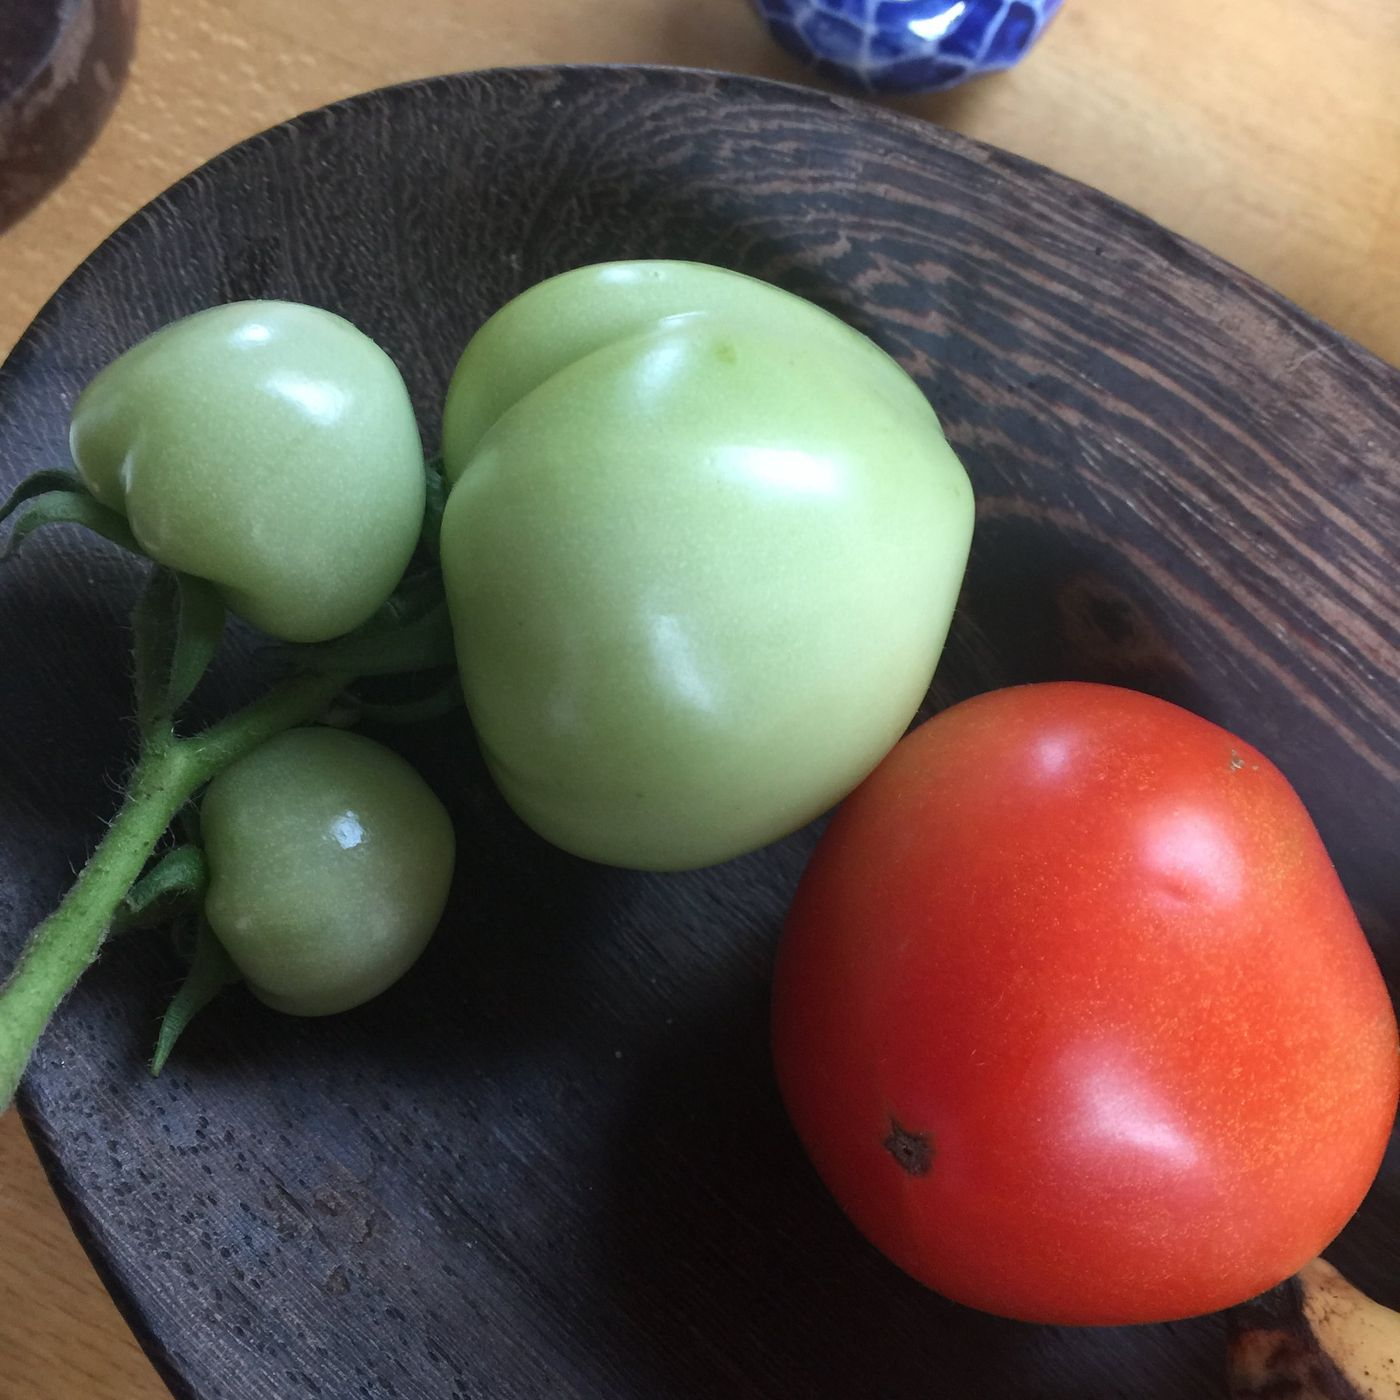 Did you take up any new hobbies this year? I grew my first tomatoes 🍅. Still a bit of time to take something up before the year ends. What do you want to do?